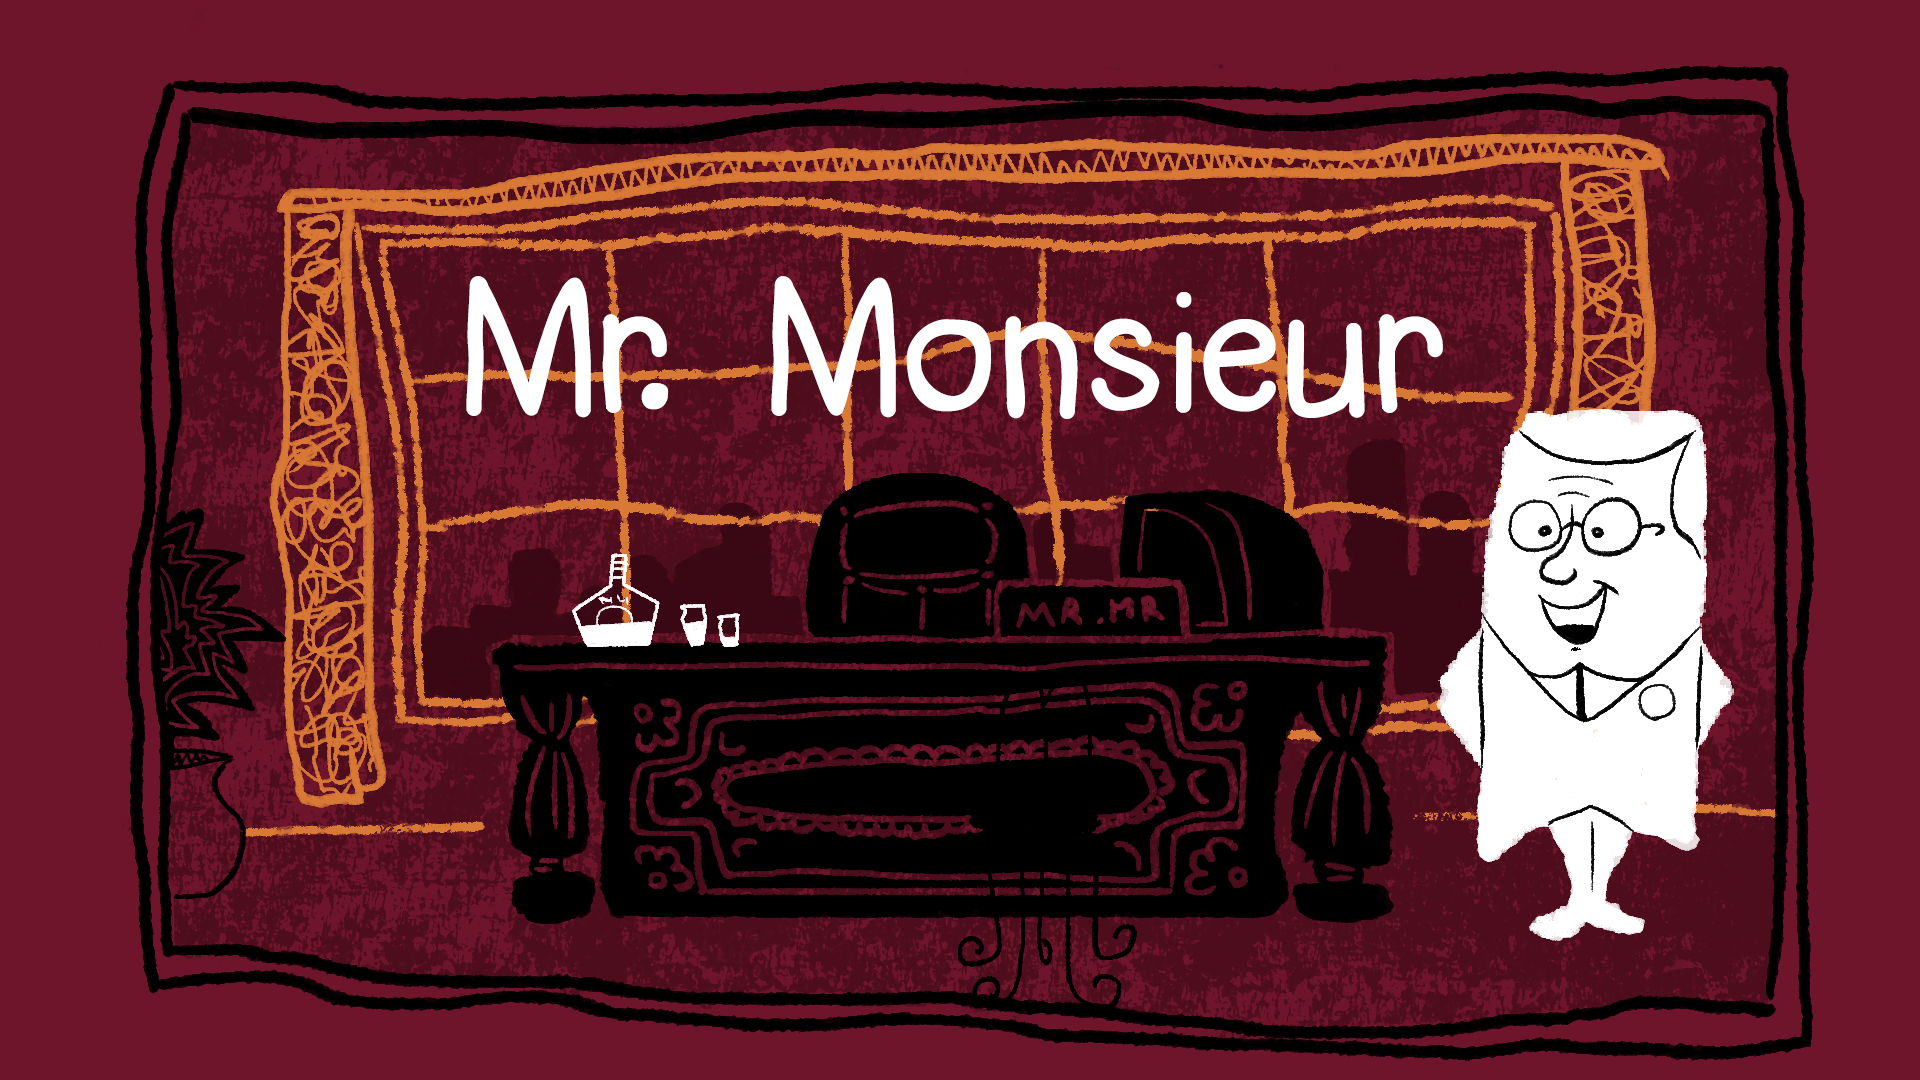 Mr. Monsieur